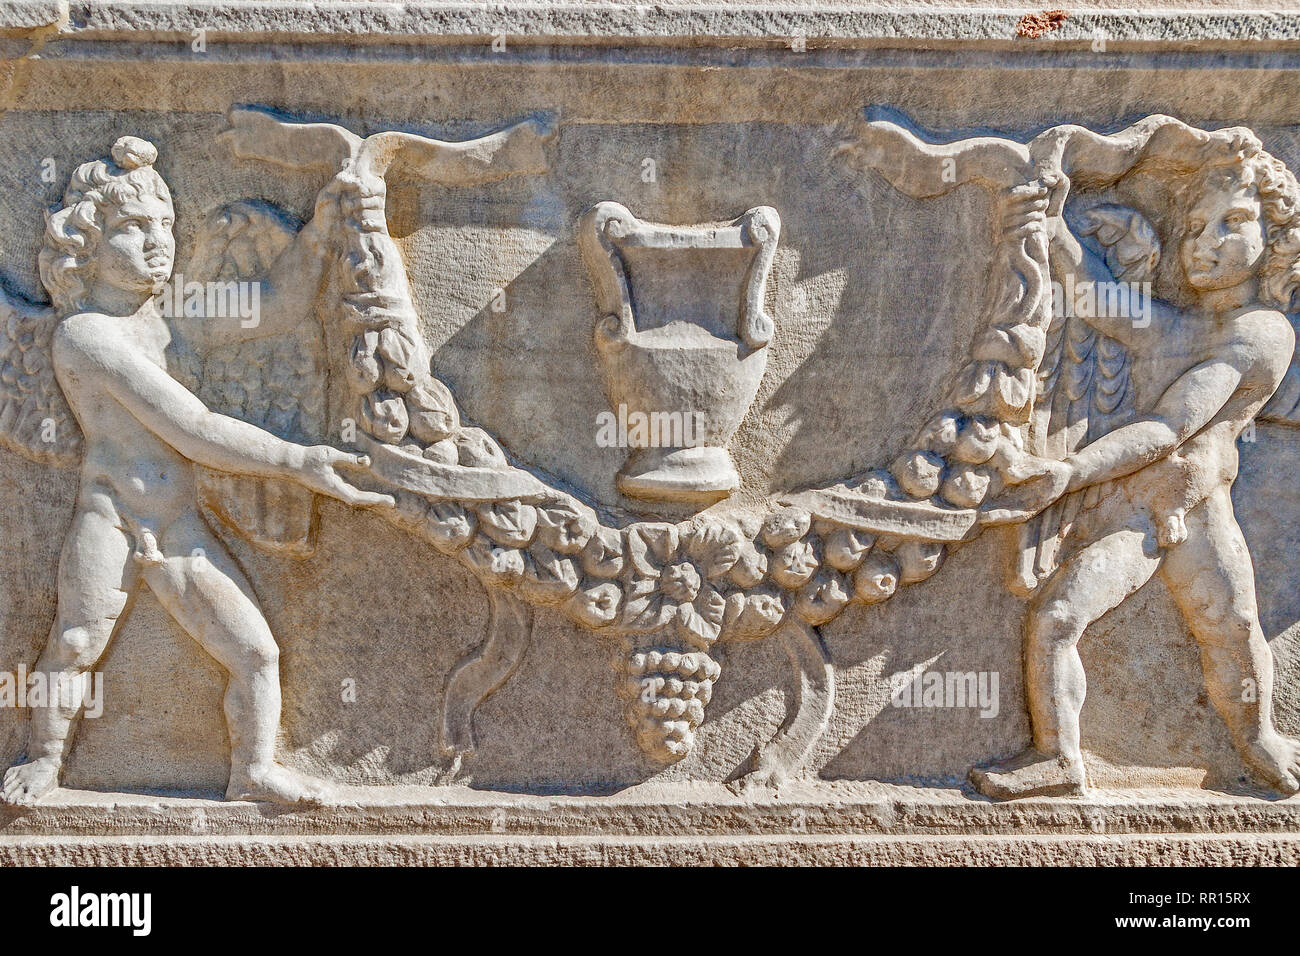 Sarcophagus Figures, Side Museum, Side, Turkey Stock Photo